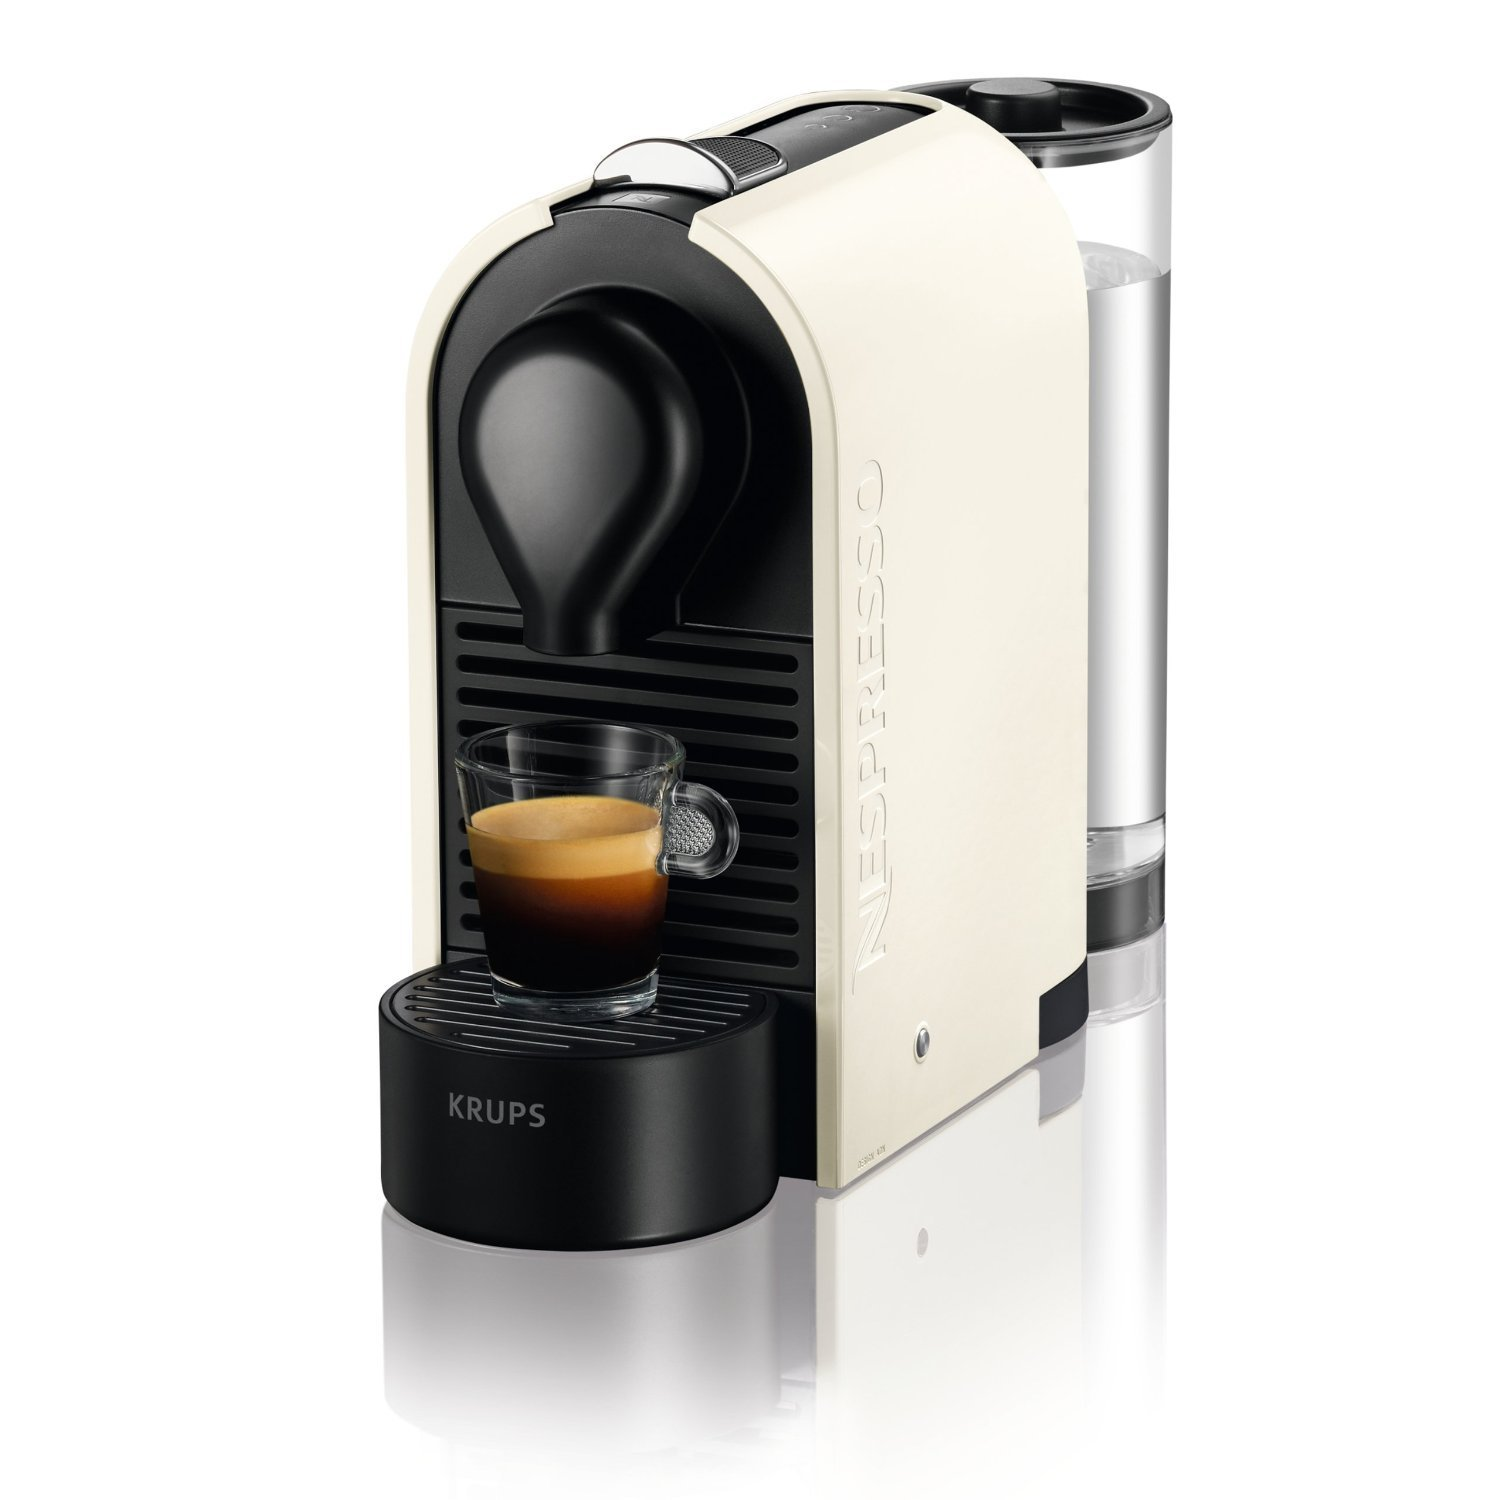 krups xn2501p4 nespresso u pure cream espresso coffee machine xn2501 ebay. Black Bedroom Furniture Sets. Home Design Ideas